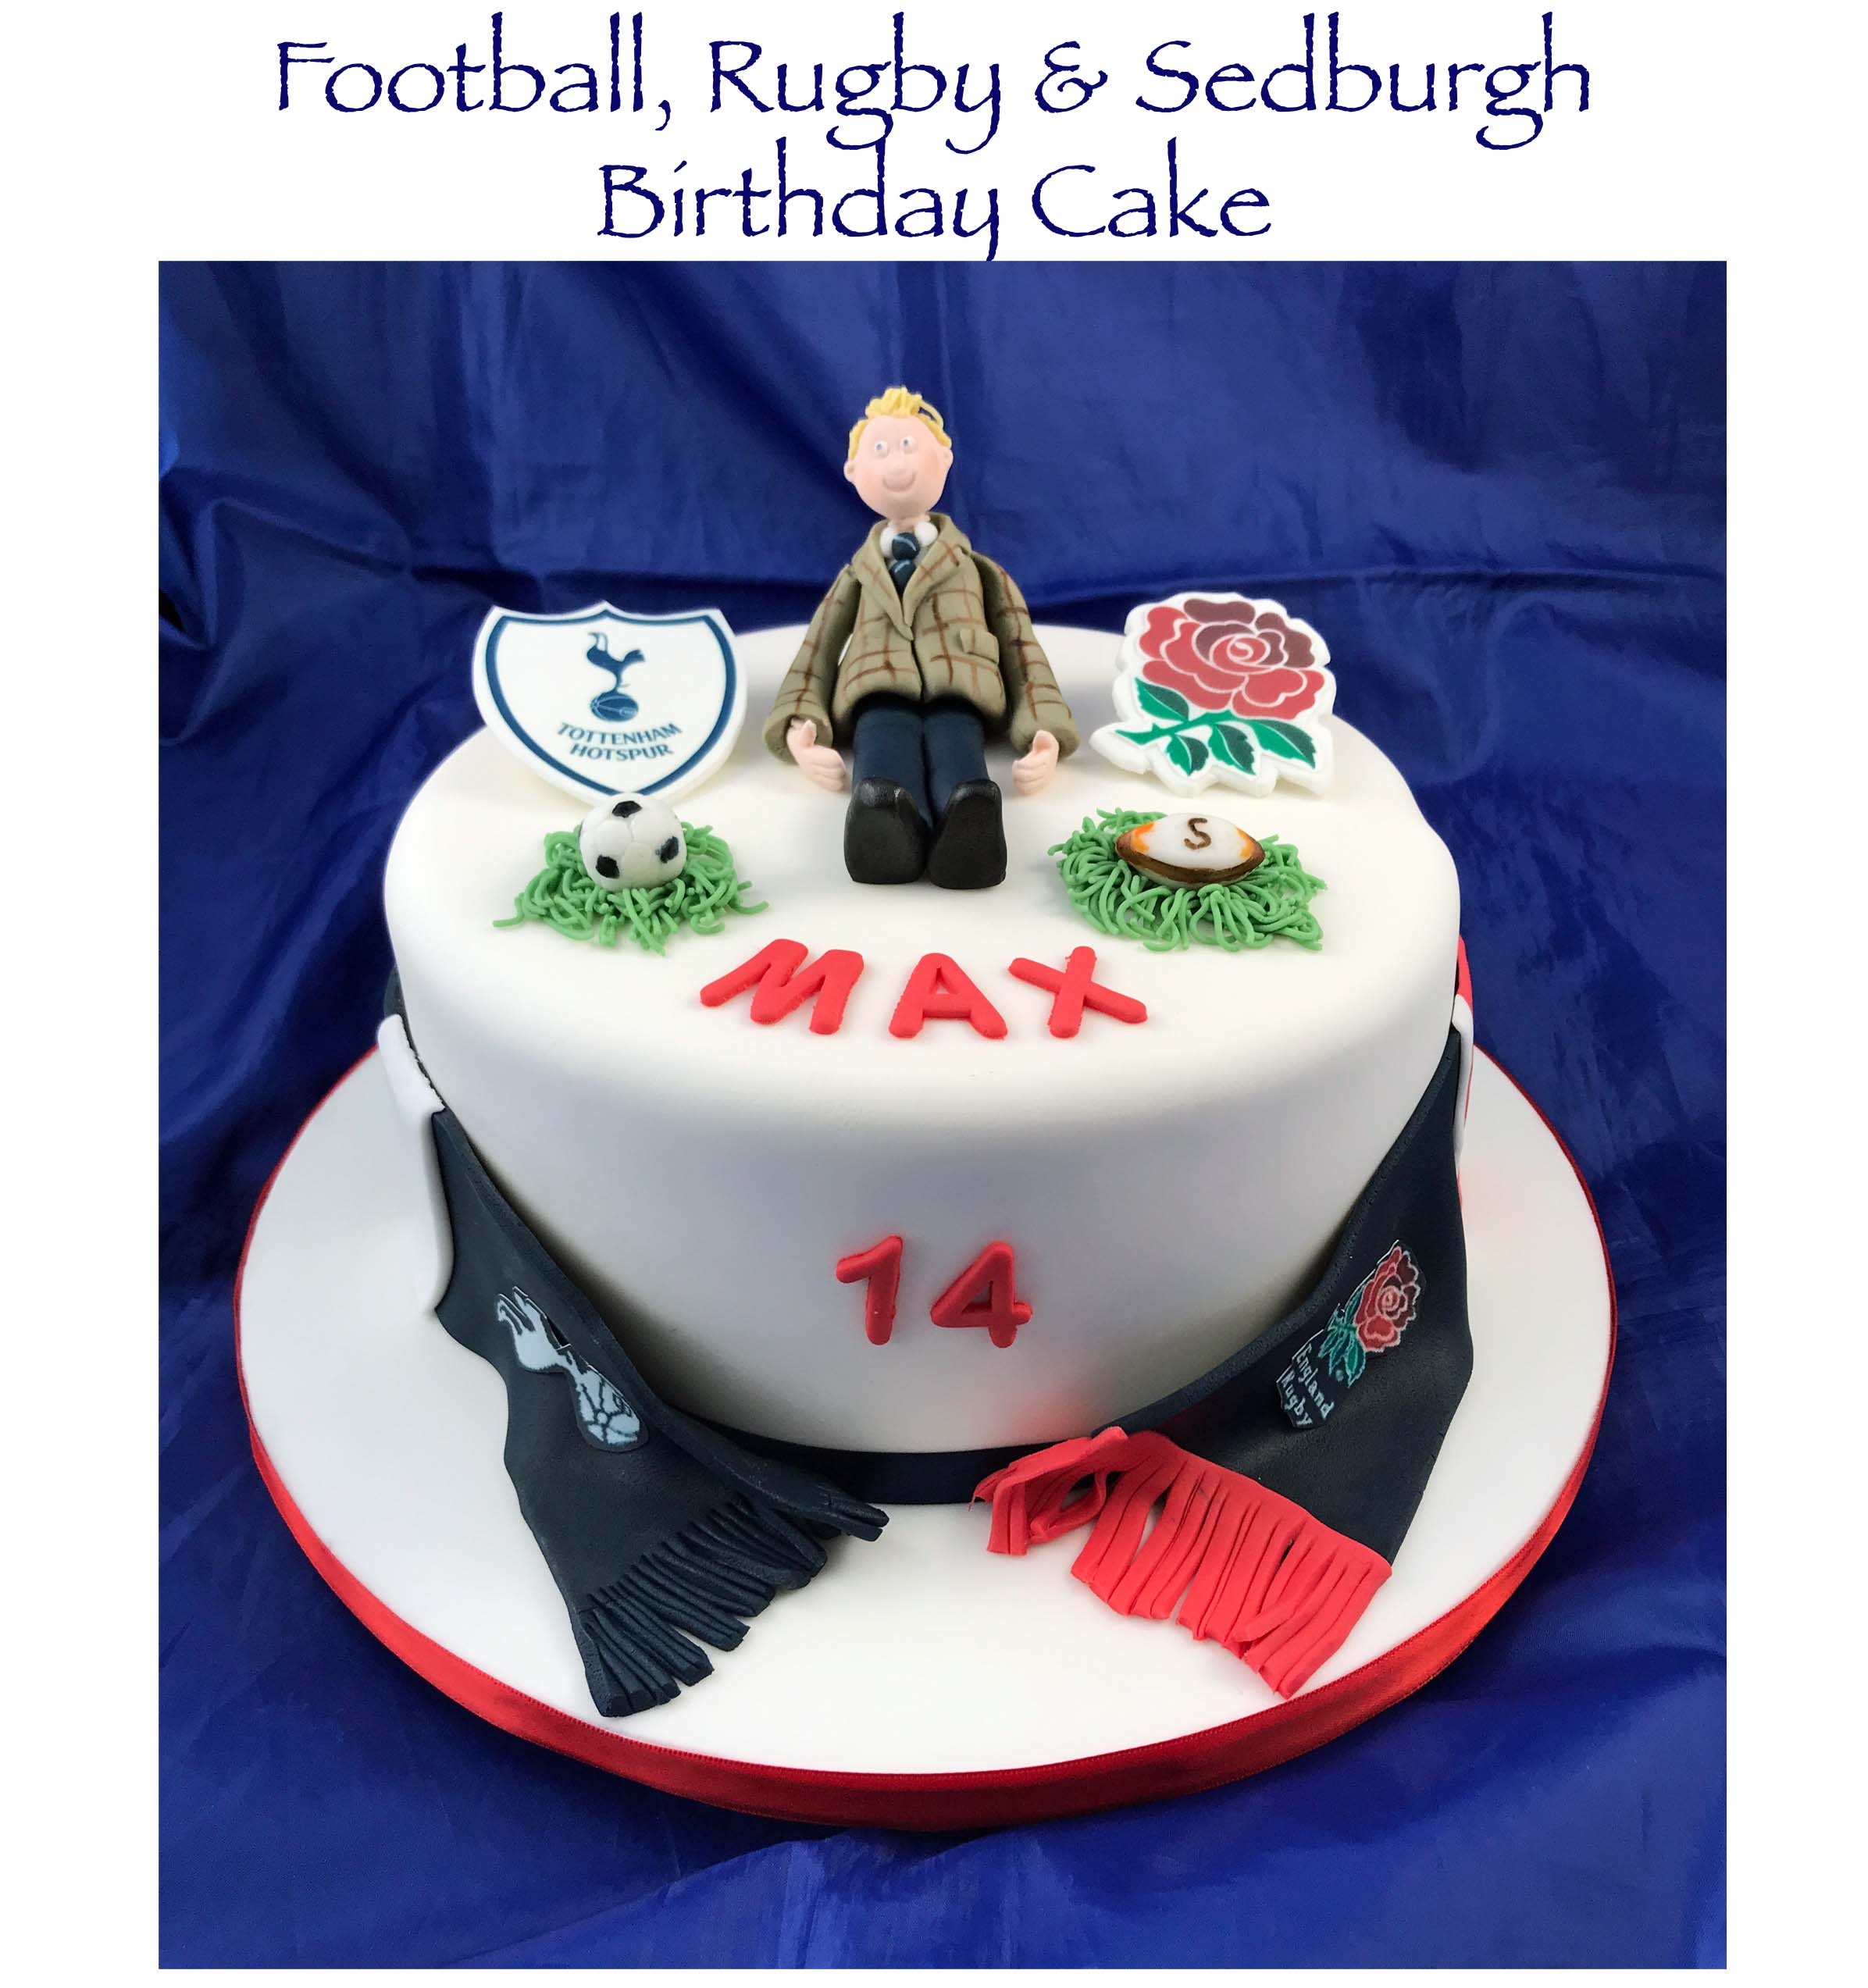 Football, Rugby & Sedburgh Birthday Cake